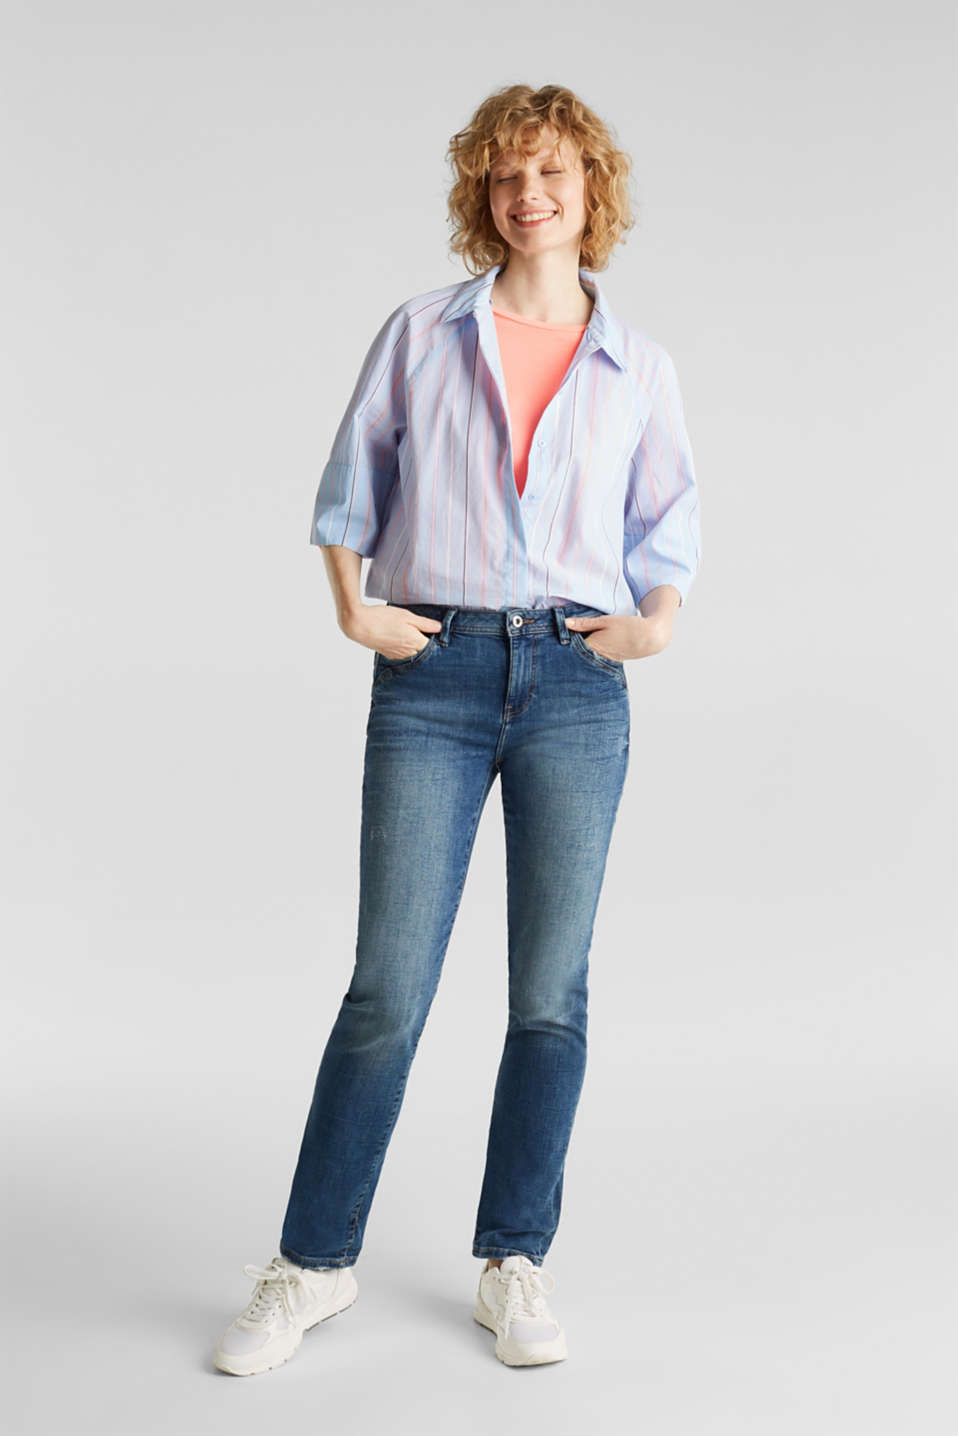 Stretch jeans with fashionable details